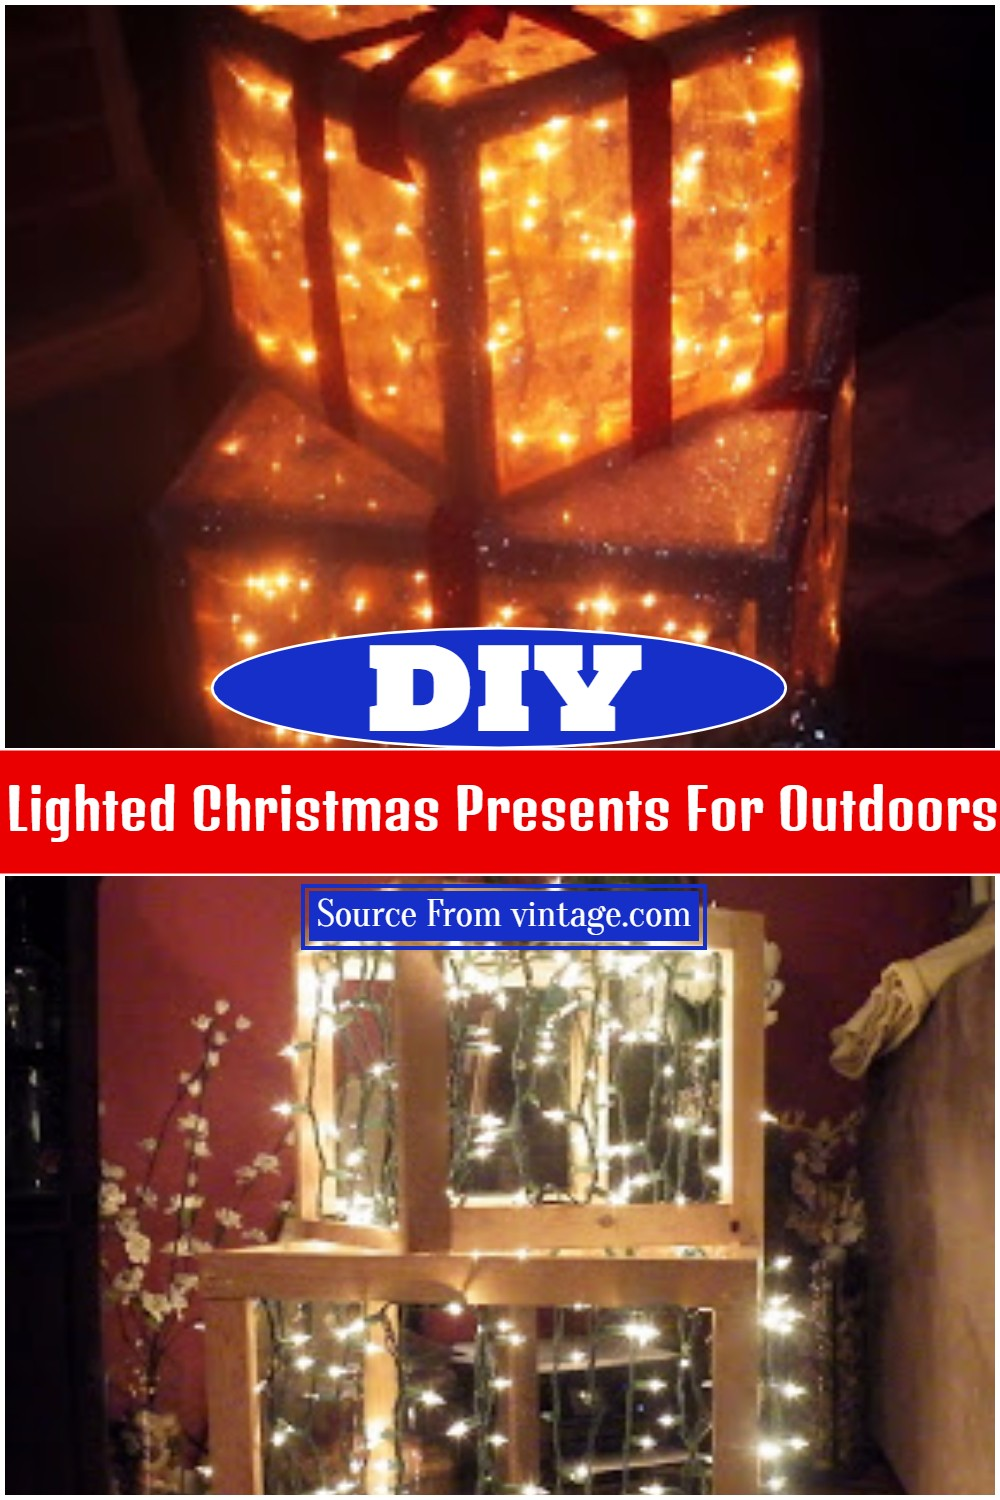 DIY Lighted Christmas Presents For Outdoors